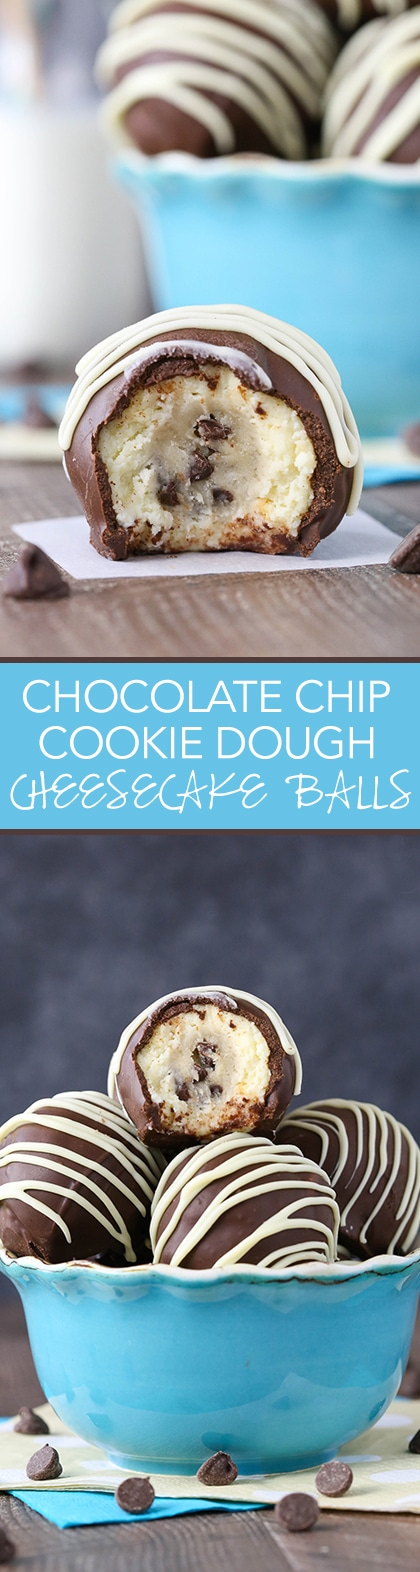 Chocolate Chip Cookie Dough Cheesecake Balls - eggless cookie dough surrounded by vanilla cheesecake! All dipped in chocolate! So good!